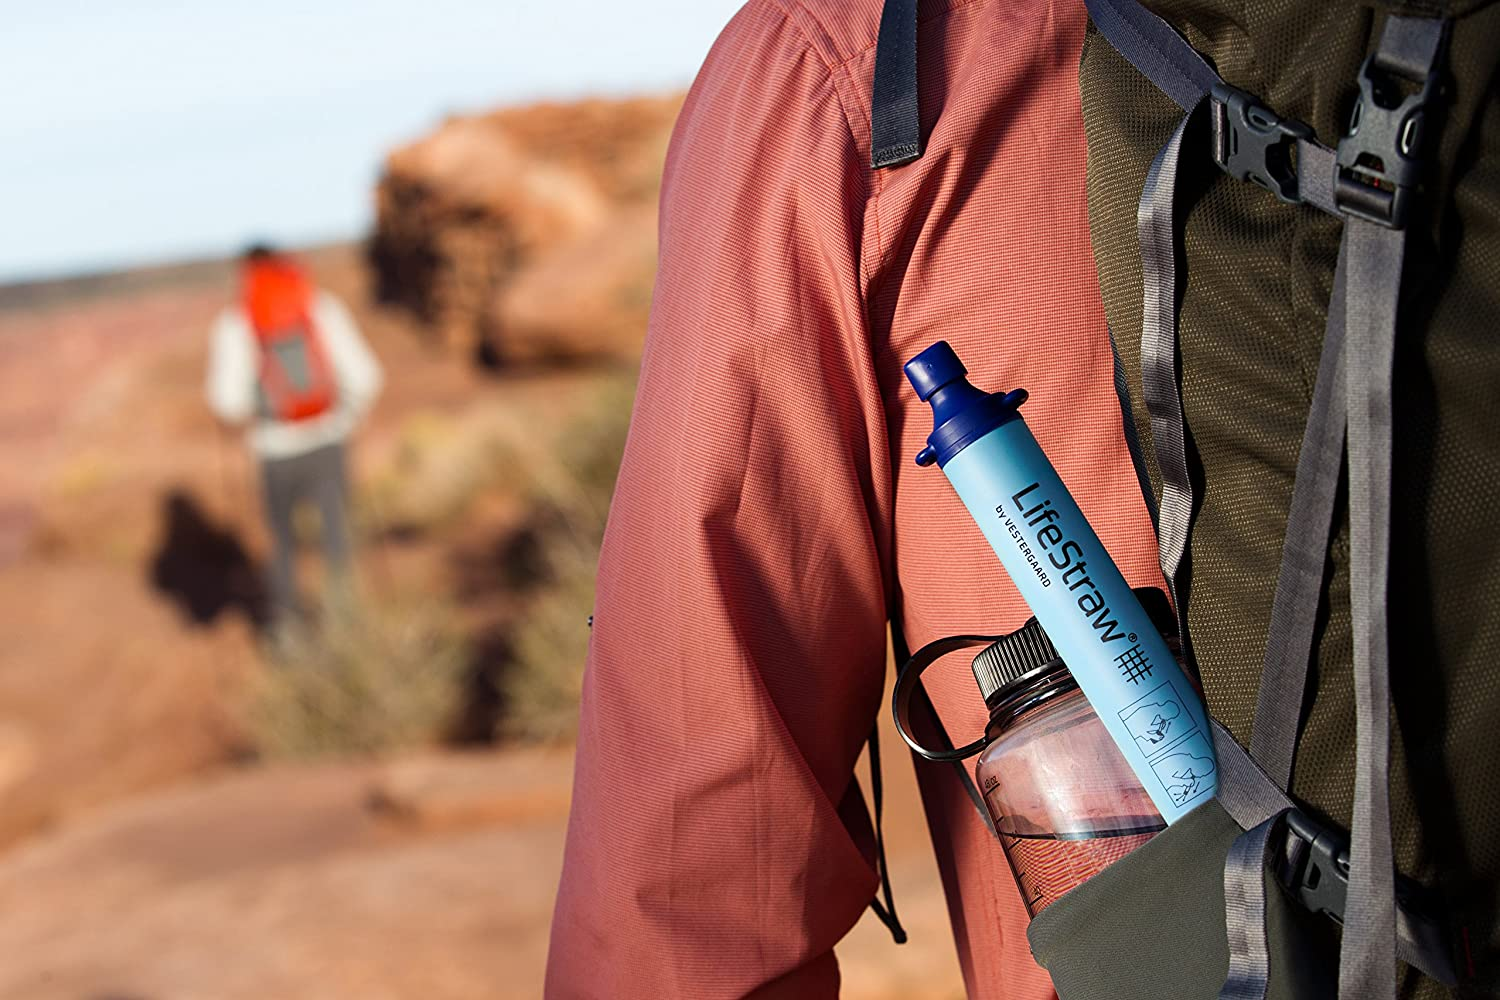 Lifestraw Personal Water Filter Review Trekbible